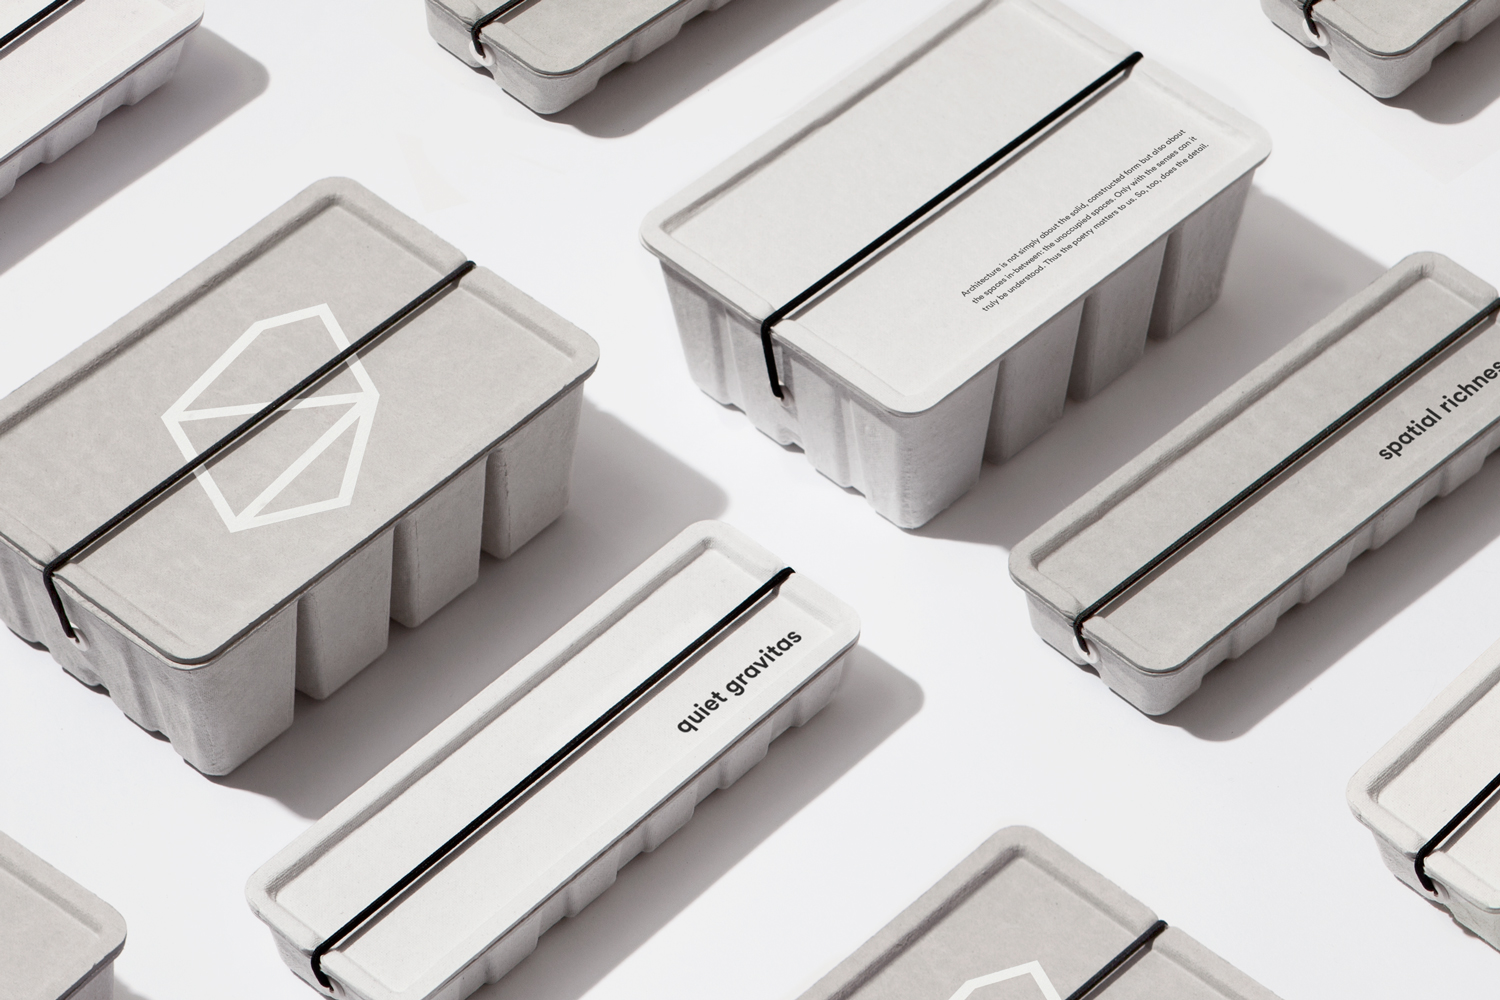 Brand identity and packaging by Toronto-based graphic design studio Blok for Canadian architecture firm Superkül